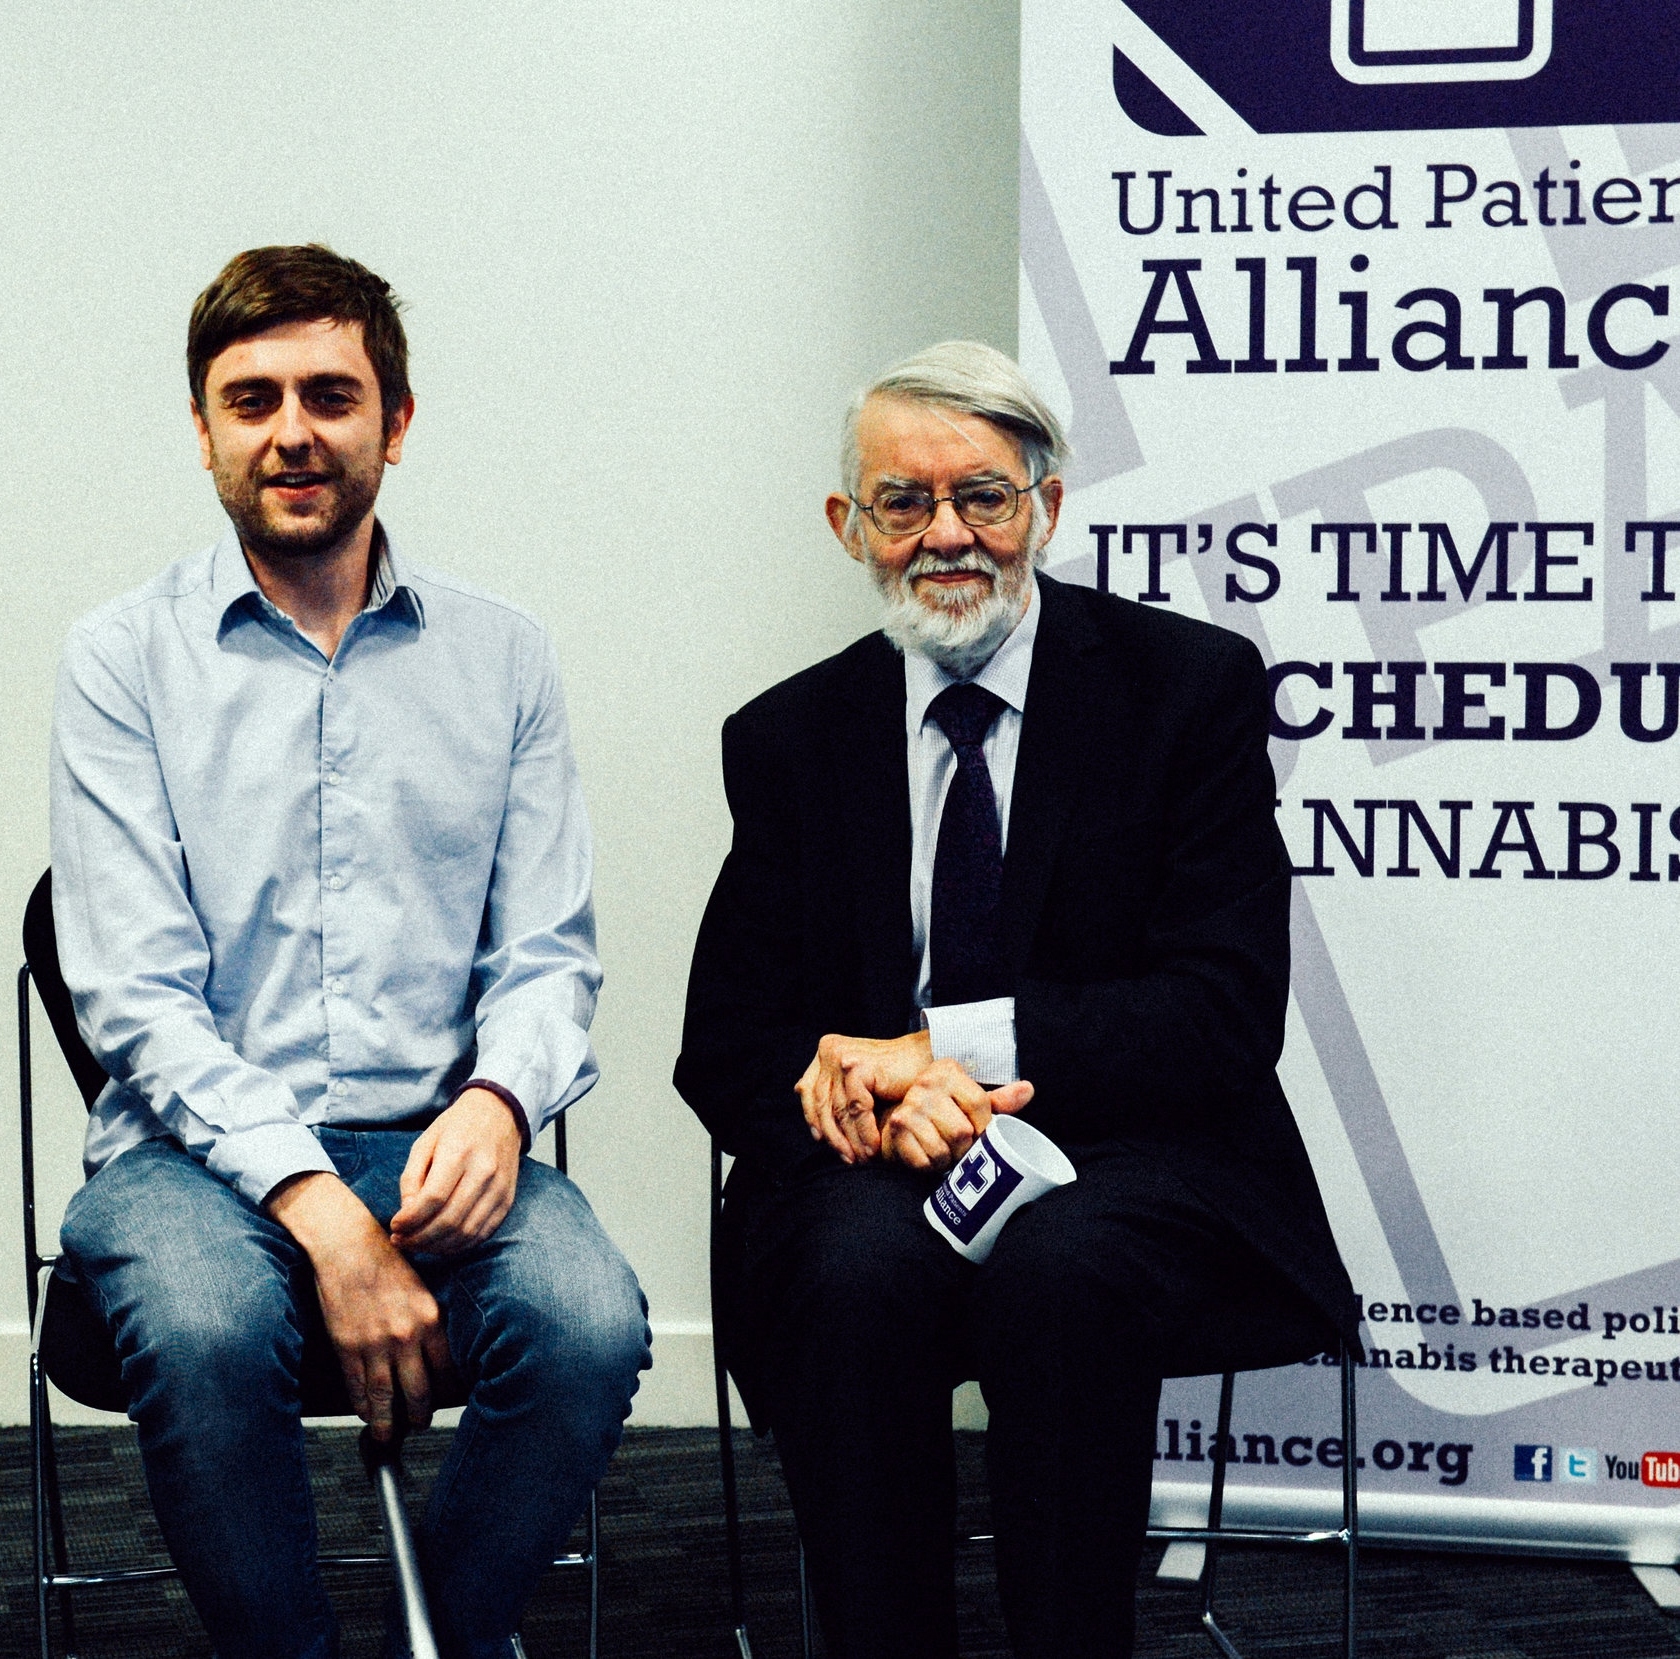 Clark French and Paul Flynn MP - UPA AGM - Bham 2017